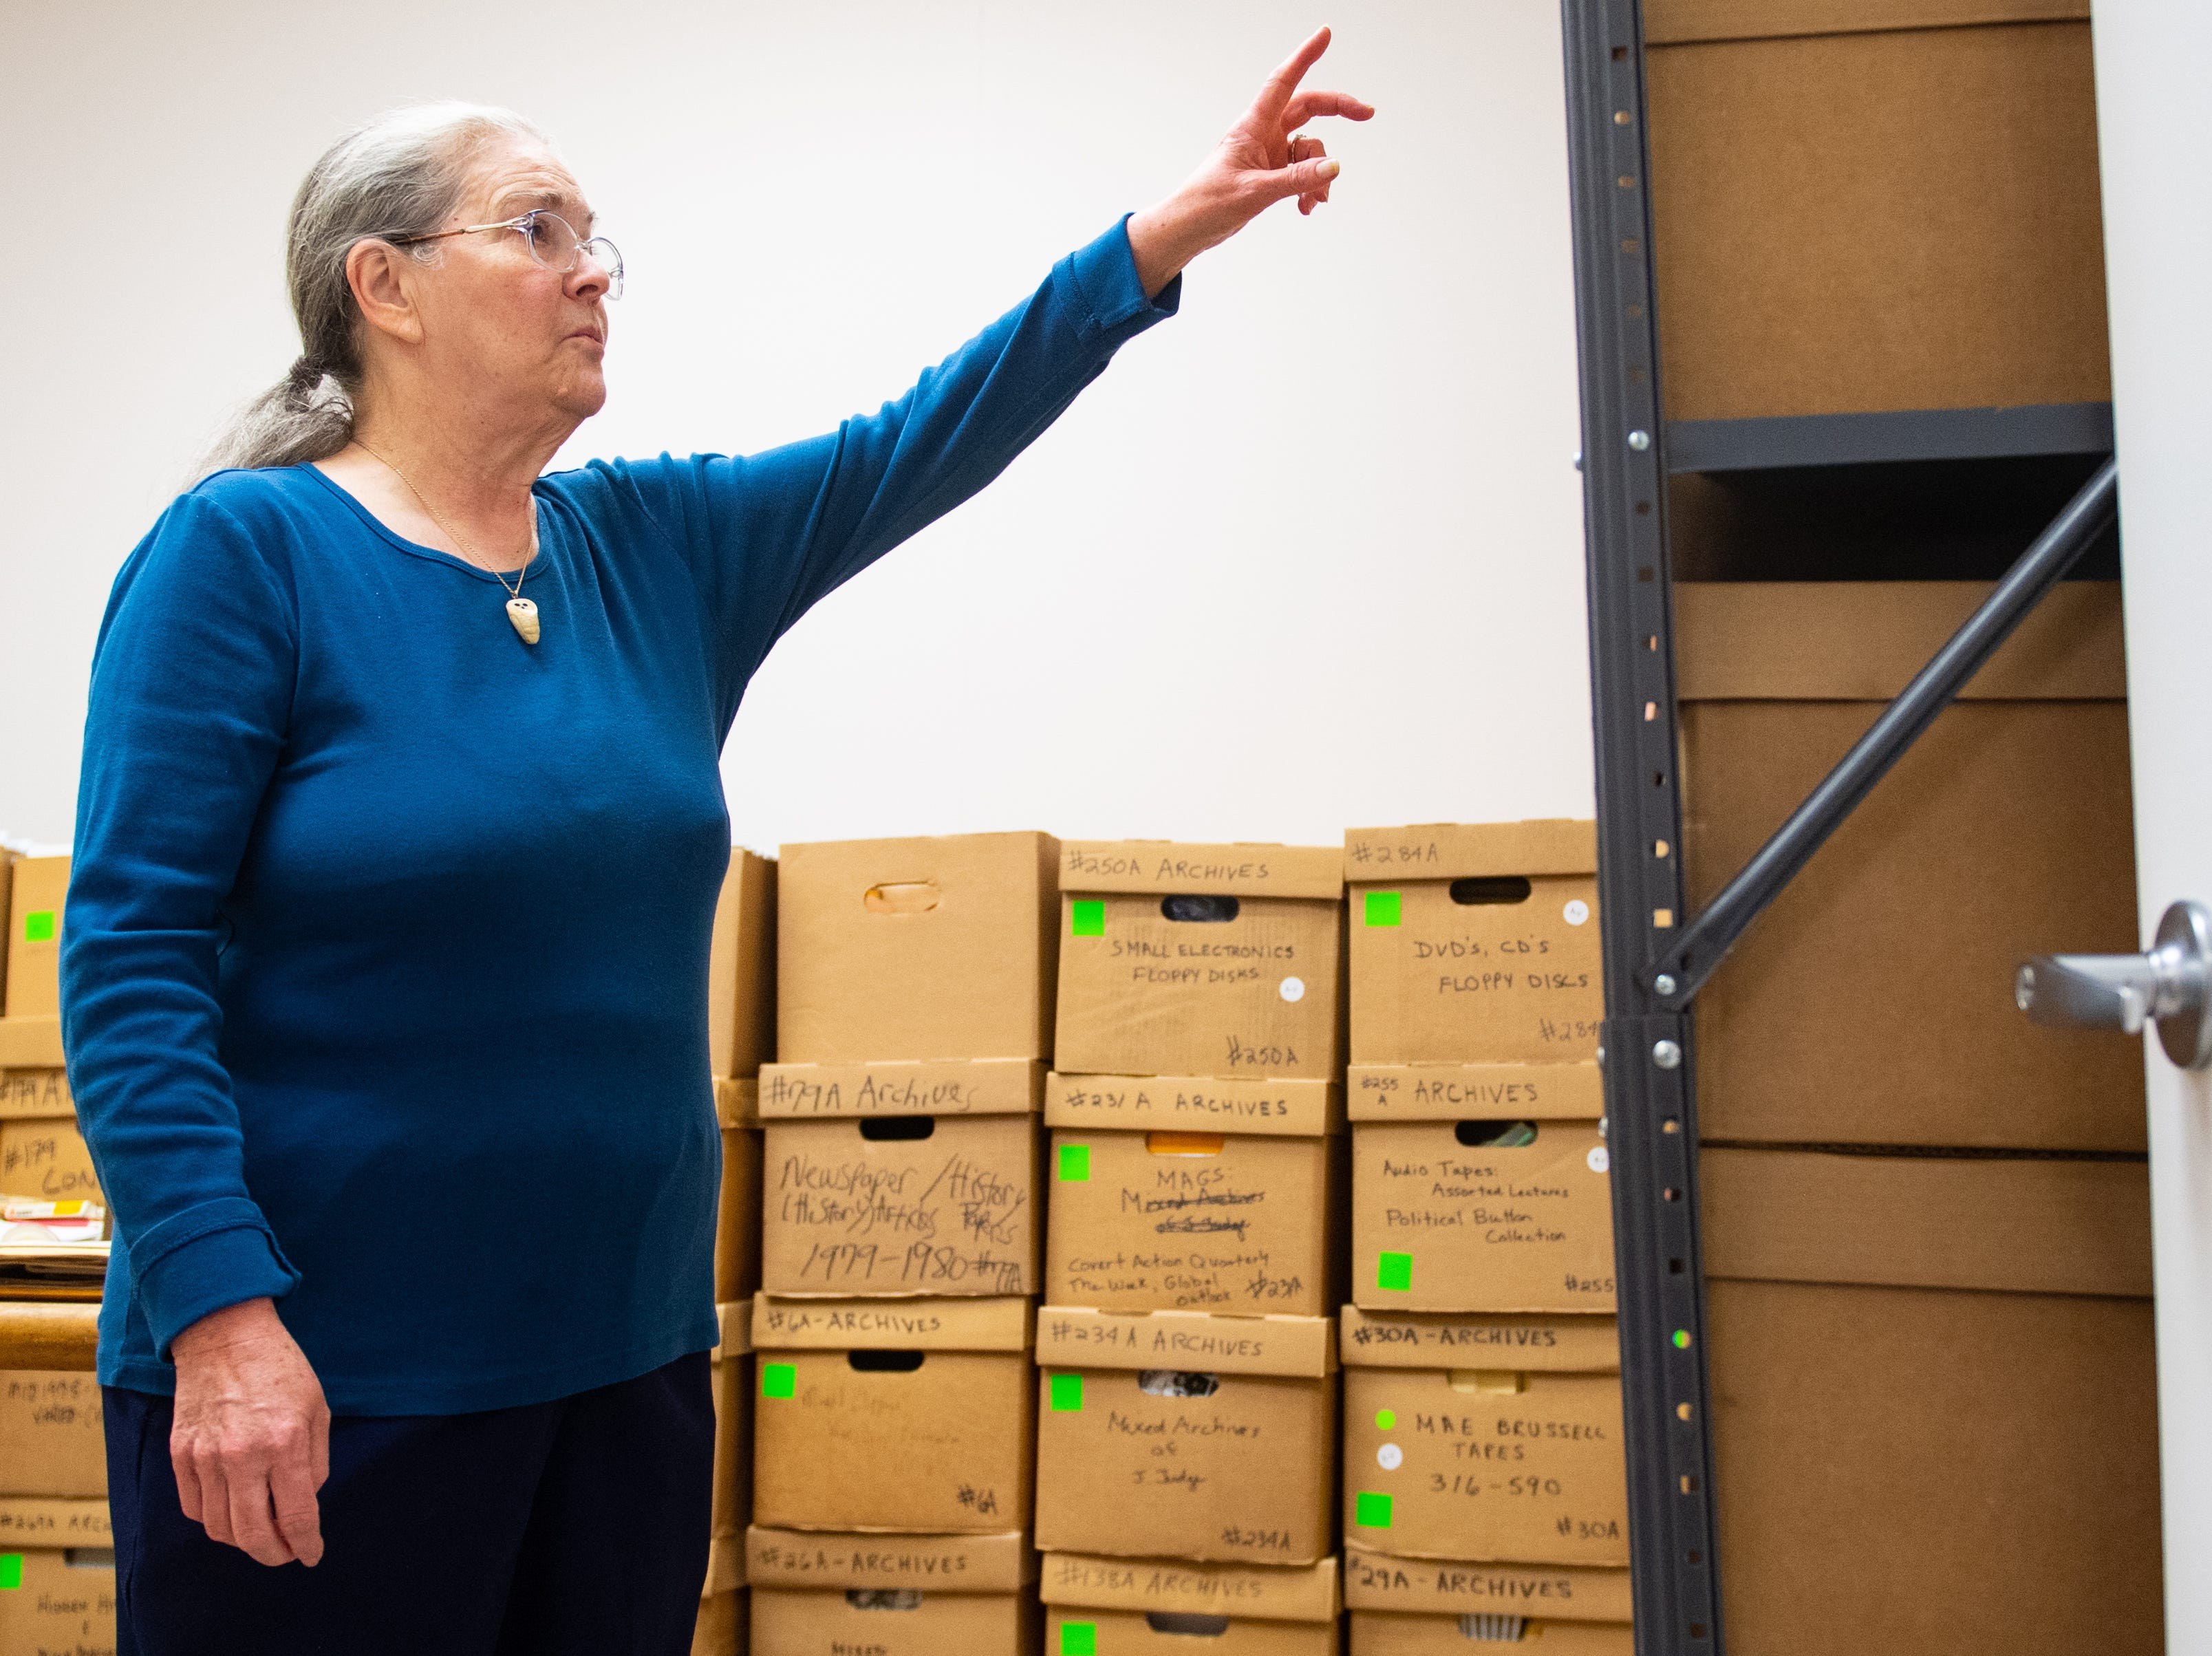 Marilyn Tenenoff reads the label on each box looking for a specific event in history at the national Hidden History Museum and Research Center, January 12, 2019.